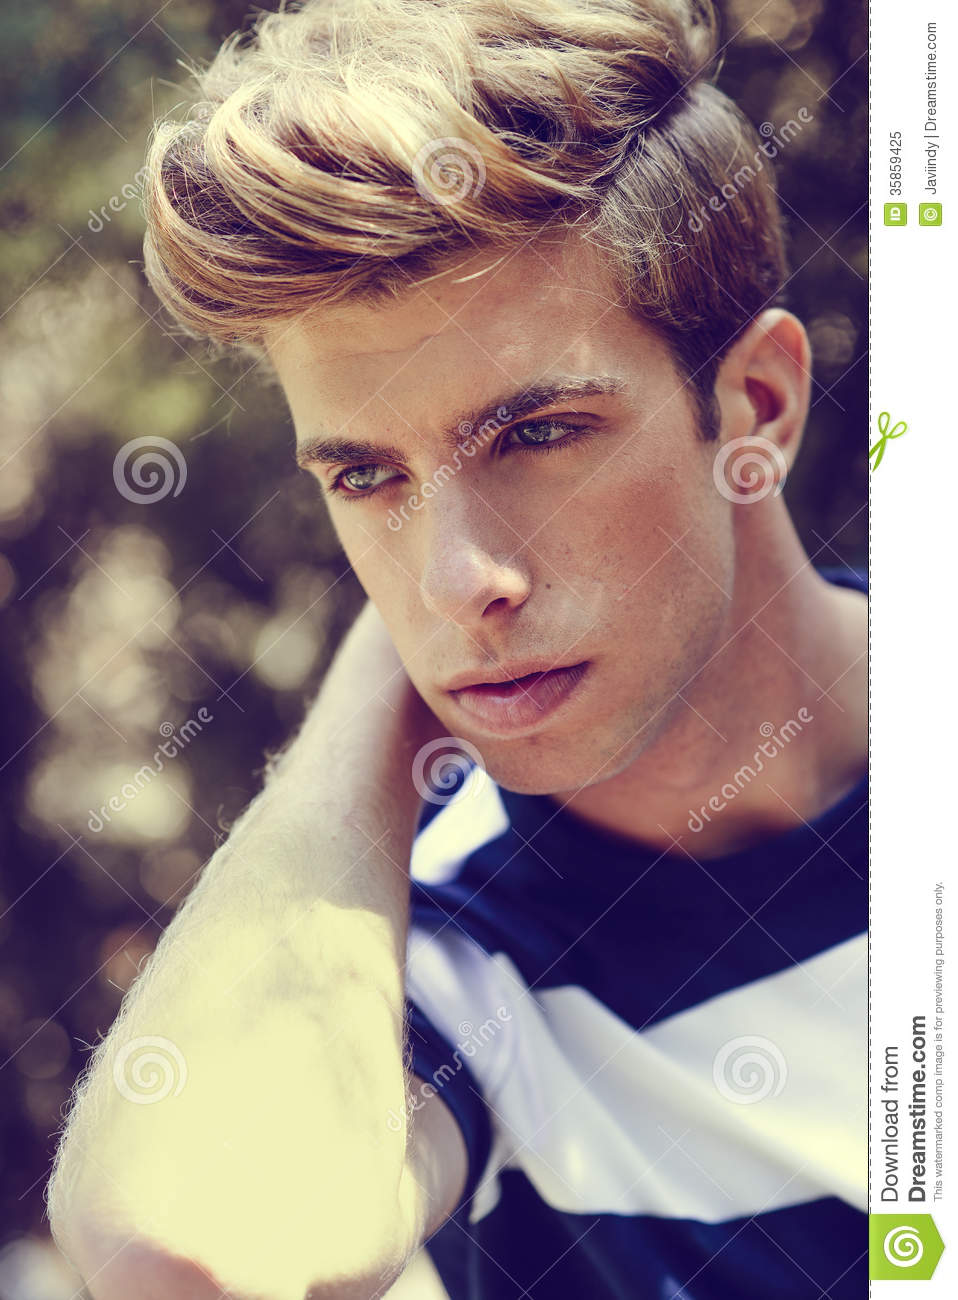 Attractive Young Handsome Man Model Of Fashion In Urban